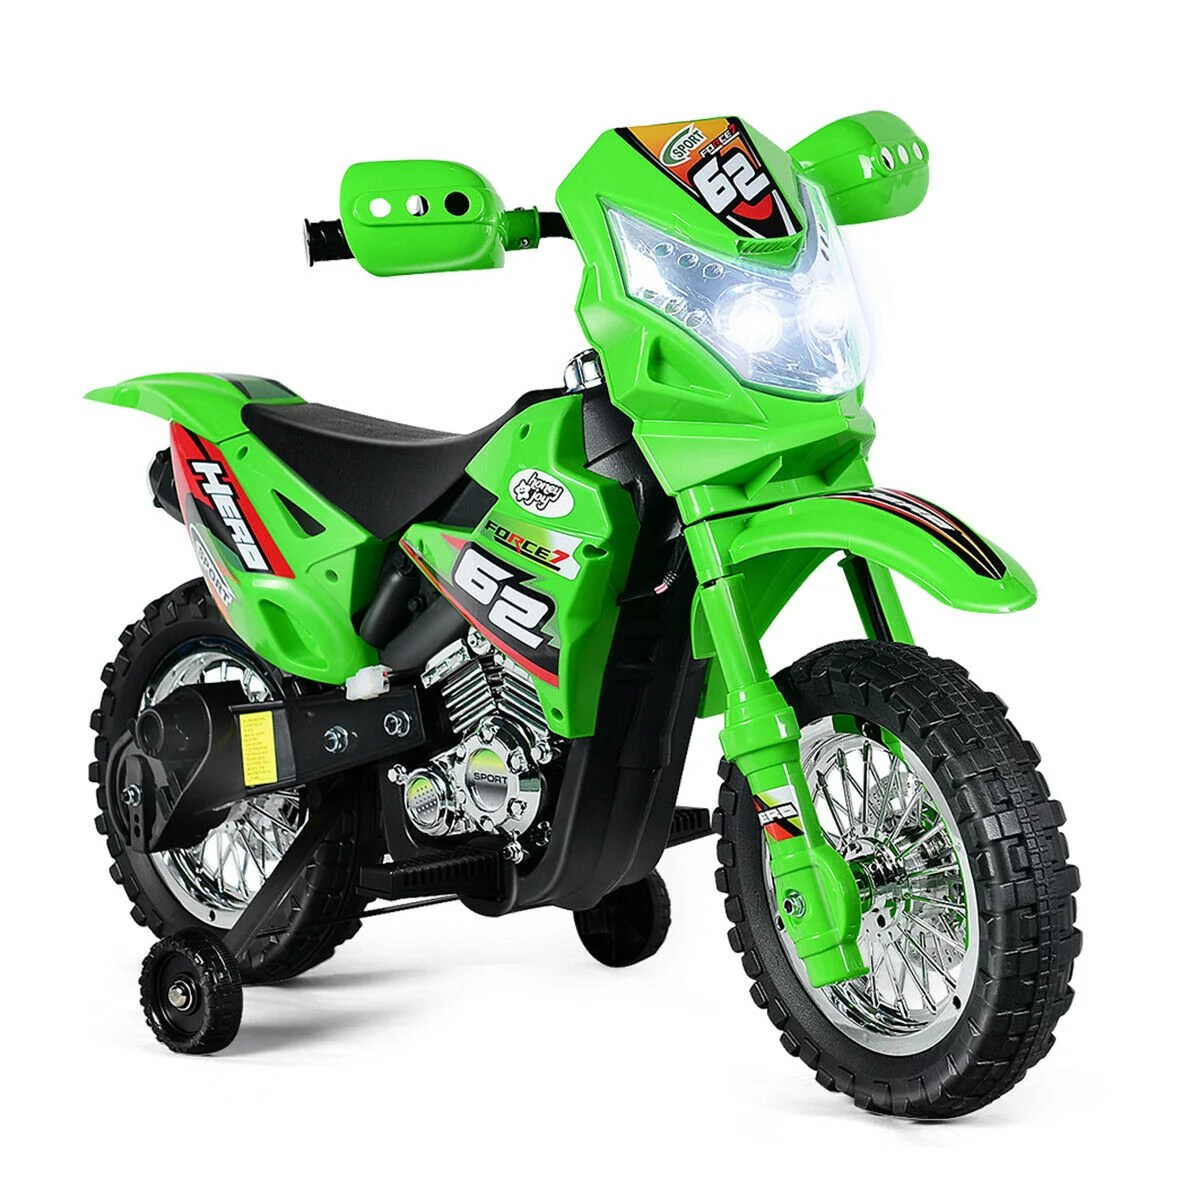 Costway Kids Ride On Motorcycle With Training Wheel 6v